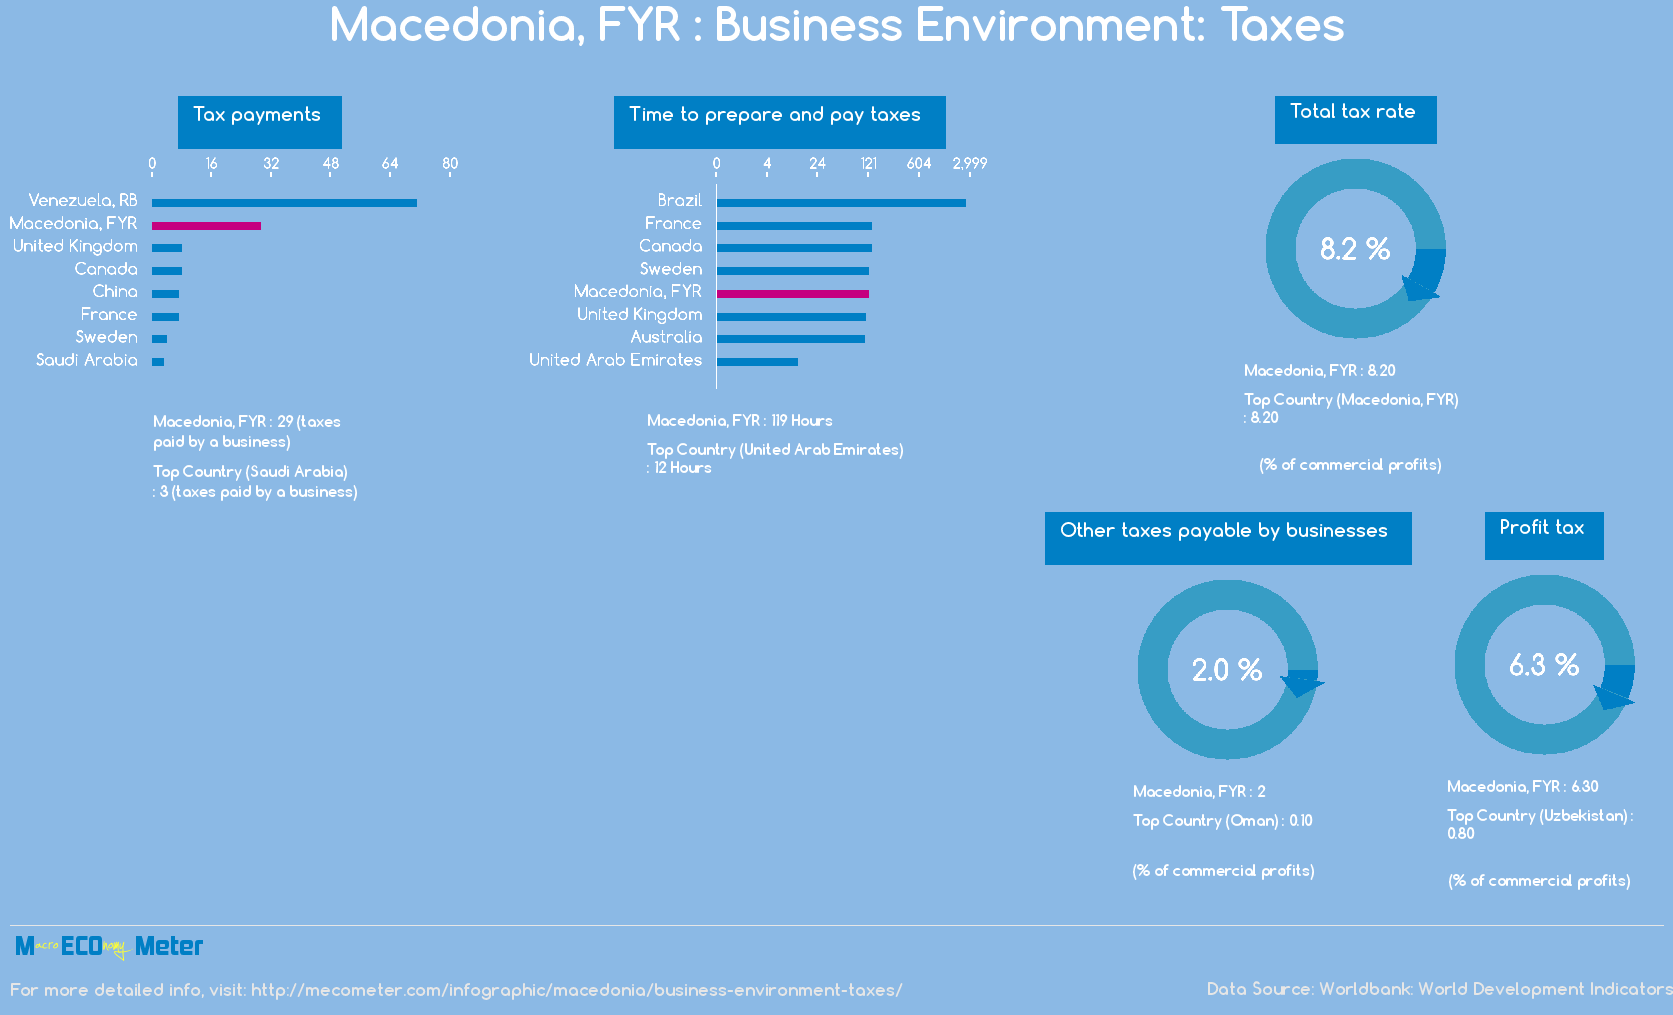 Macedonia, FYR : Business Environment: Taxes